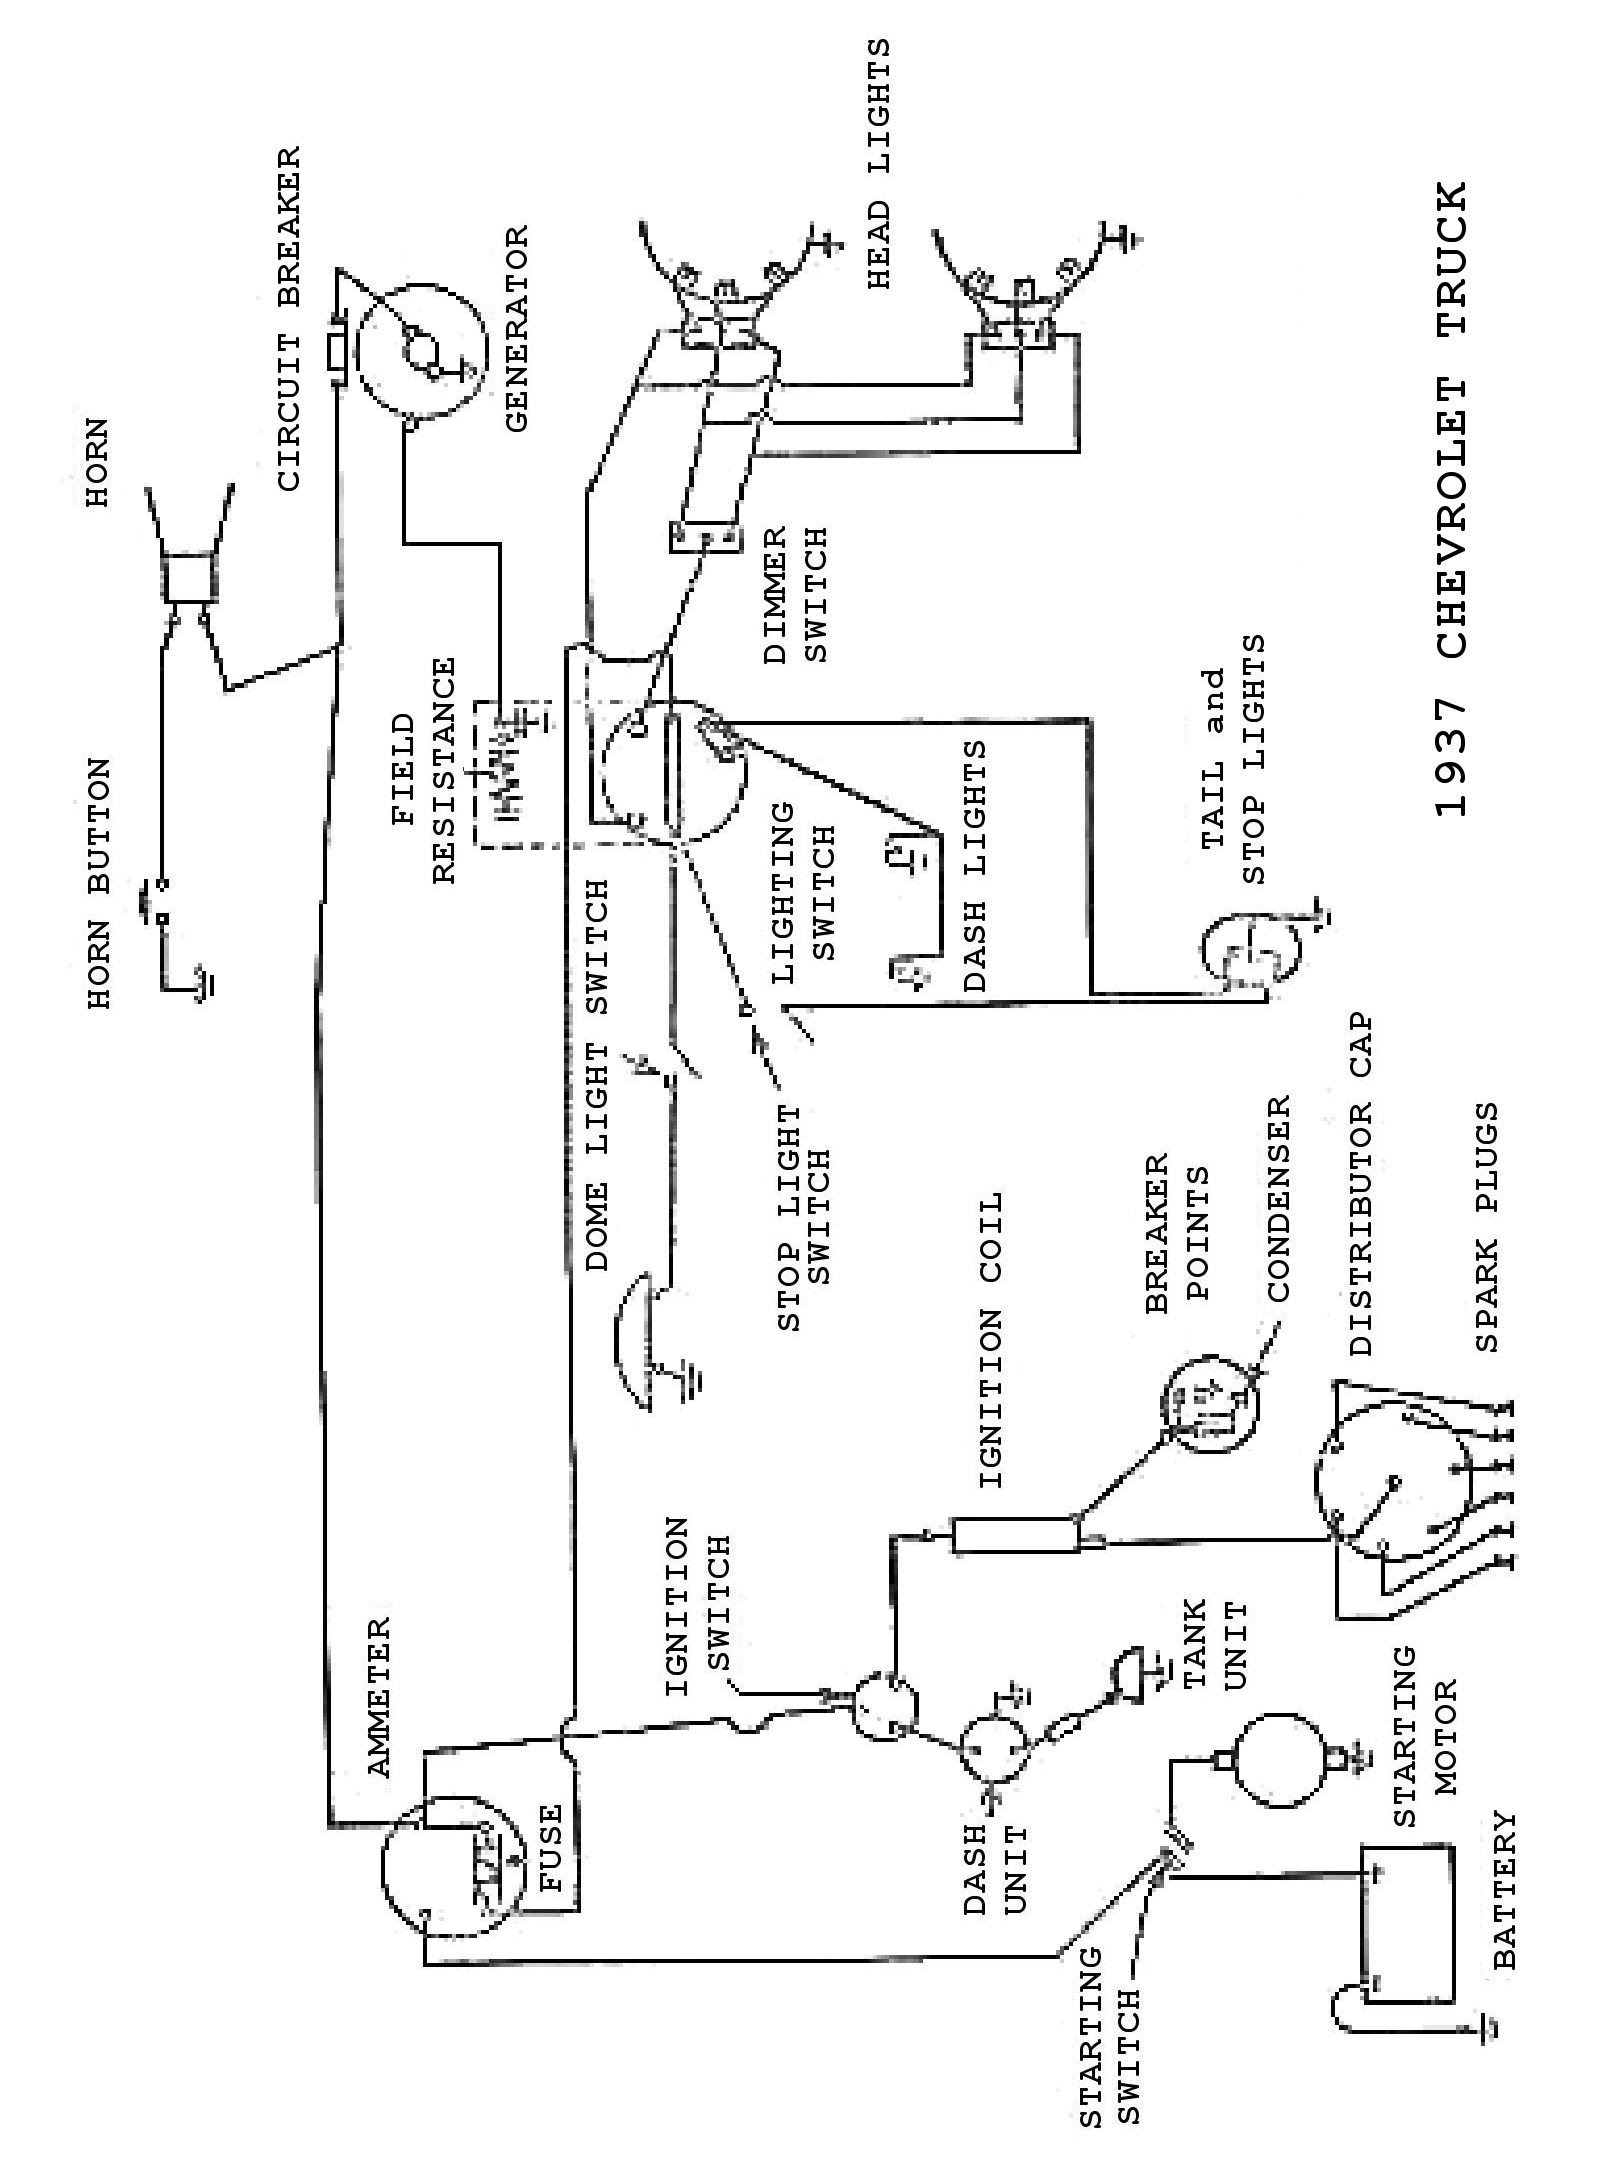 1998 Chevy Silverado Brake Light Switch Wiring Diagram from lh5.googleusercontent.com